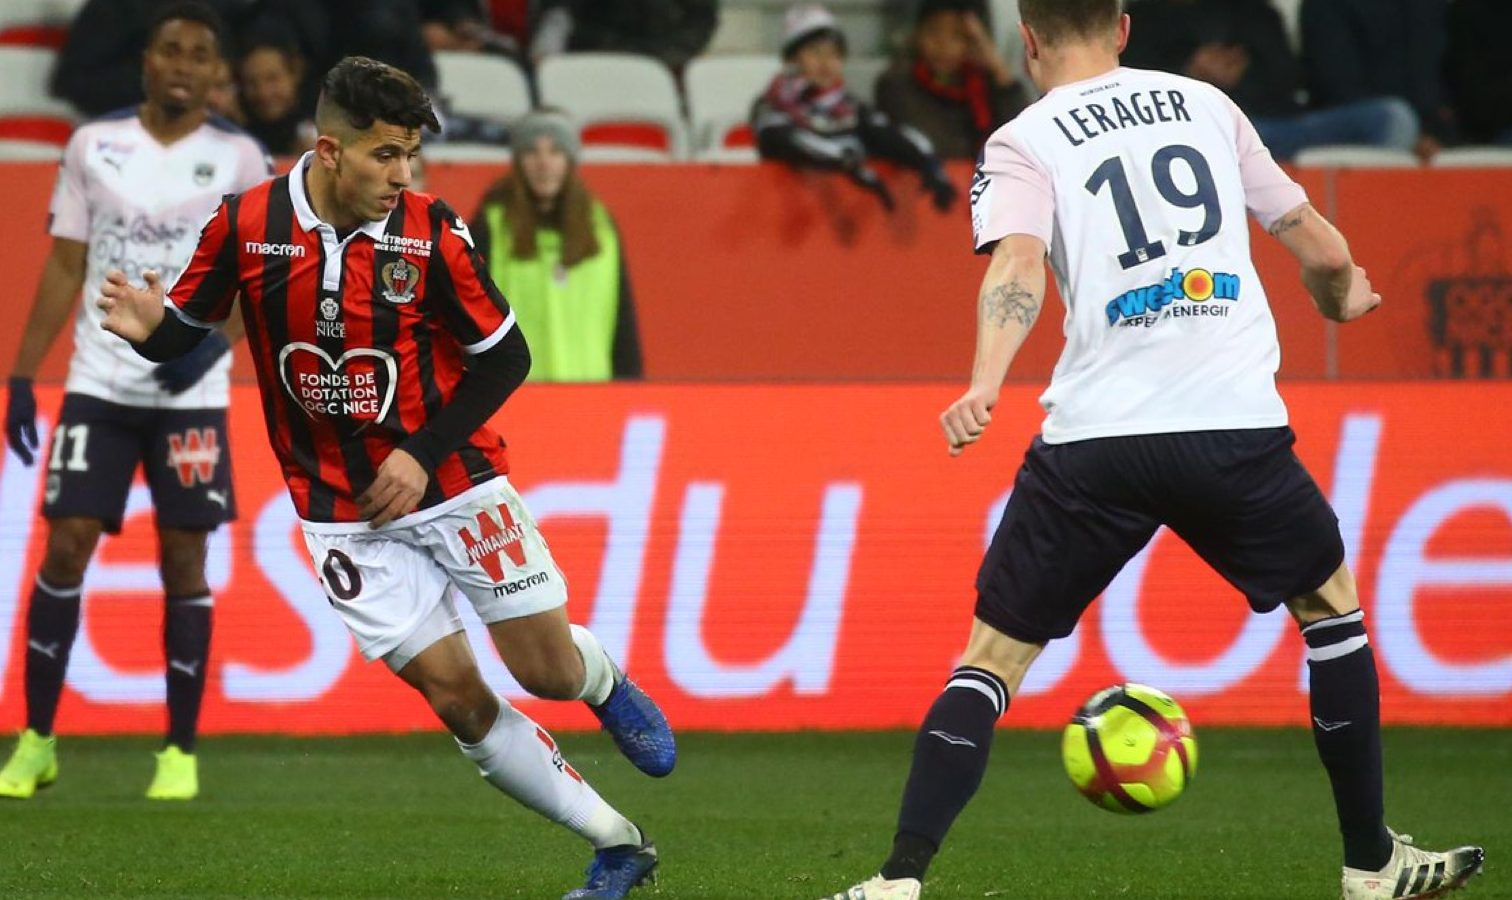 atal youcef nice bordeaux